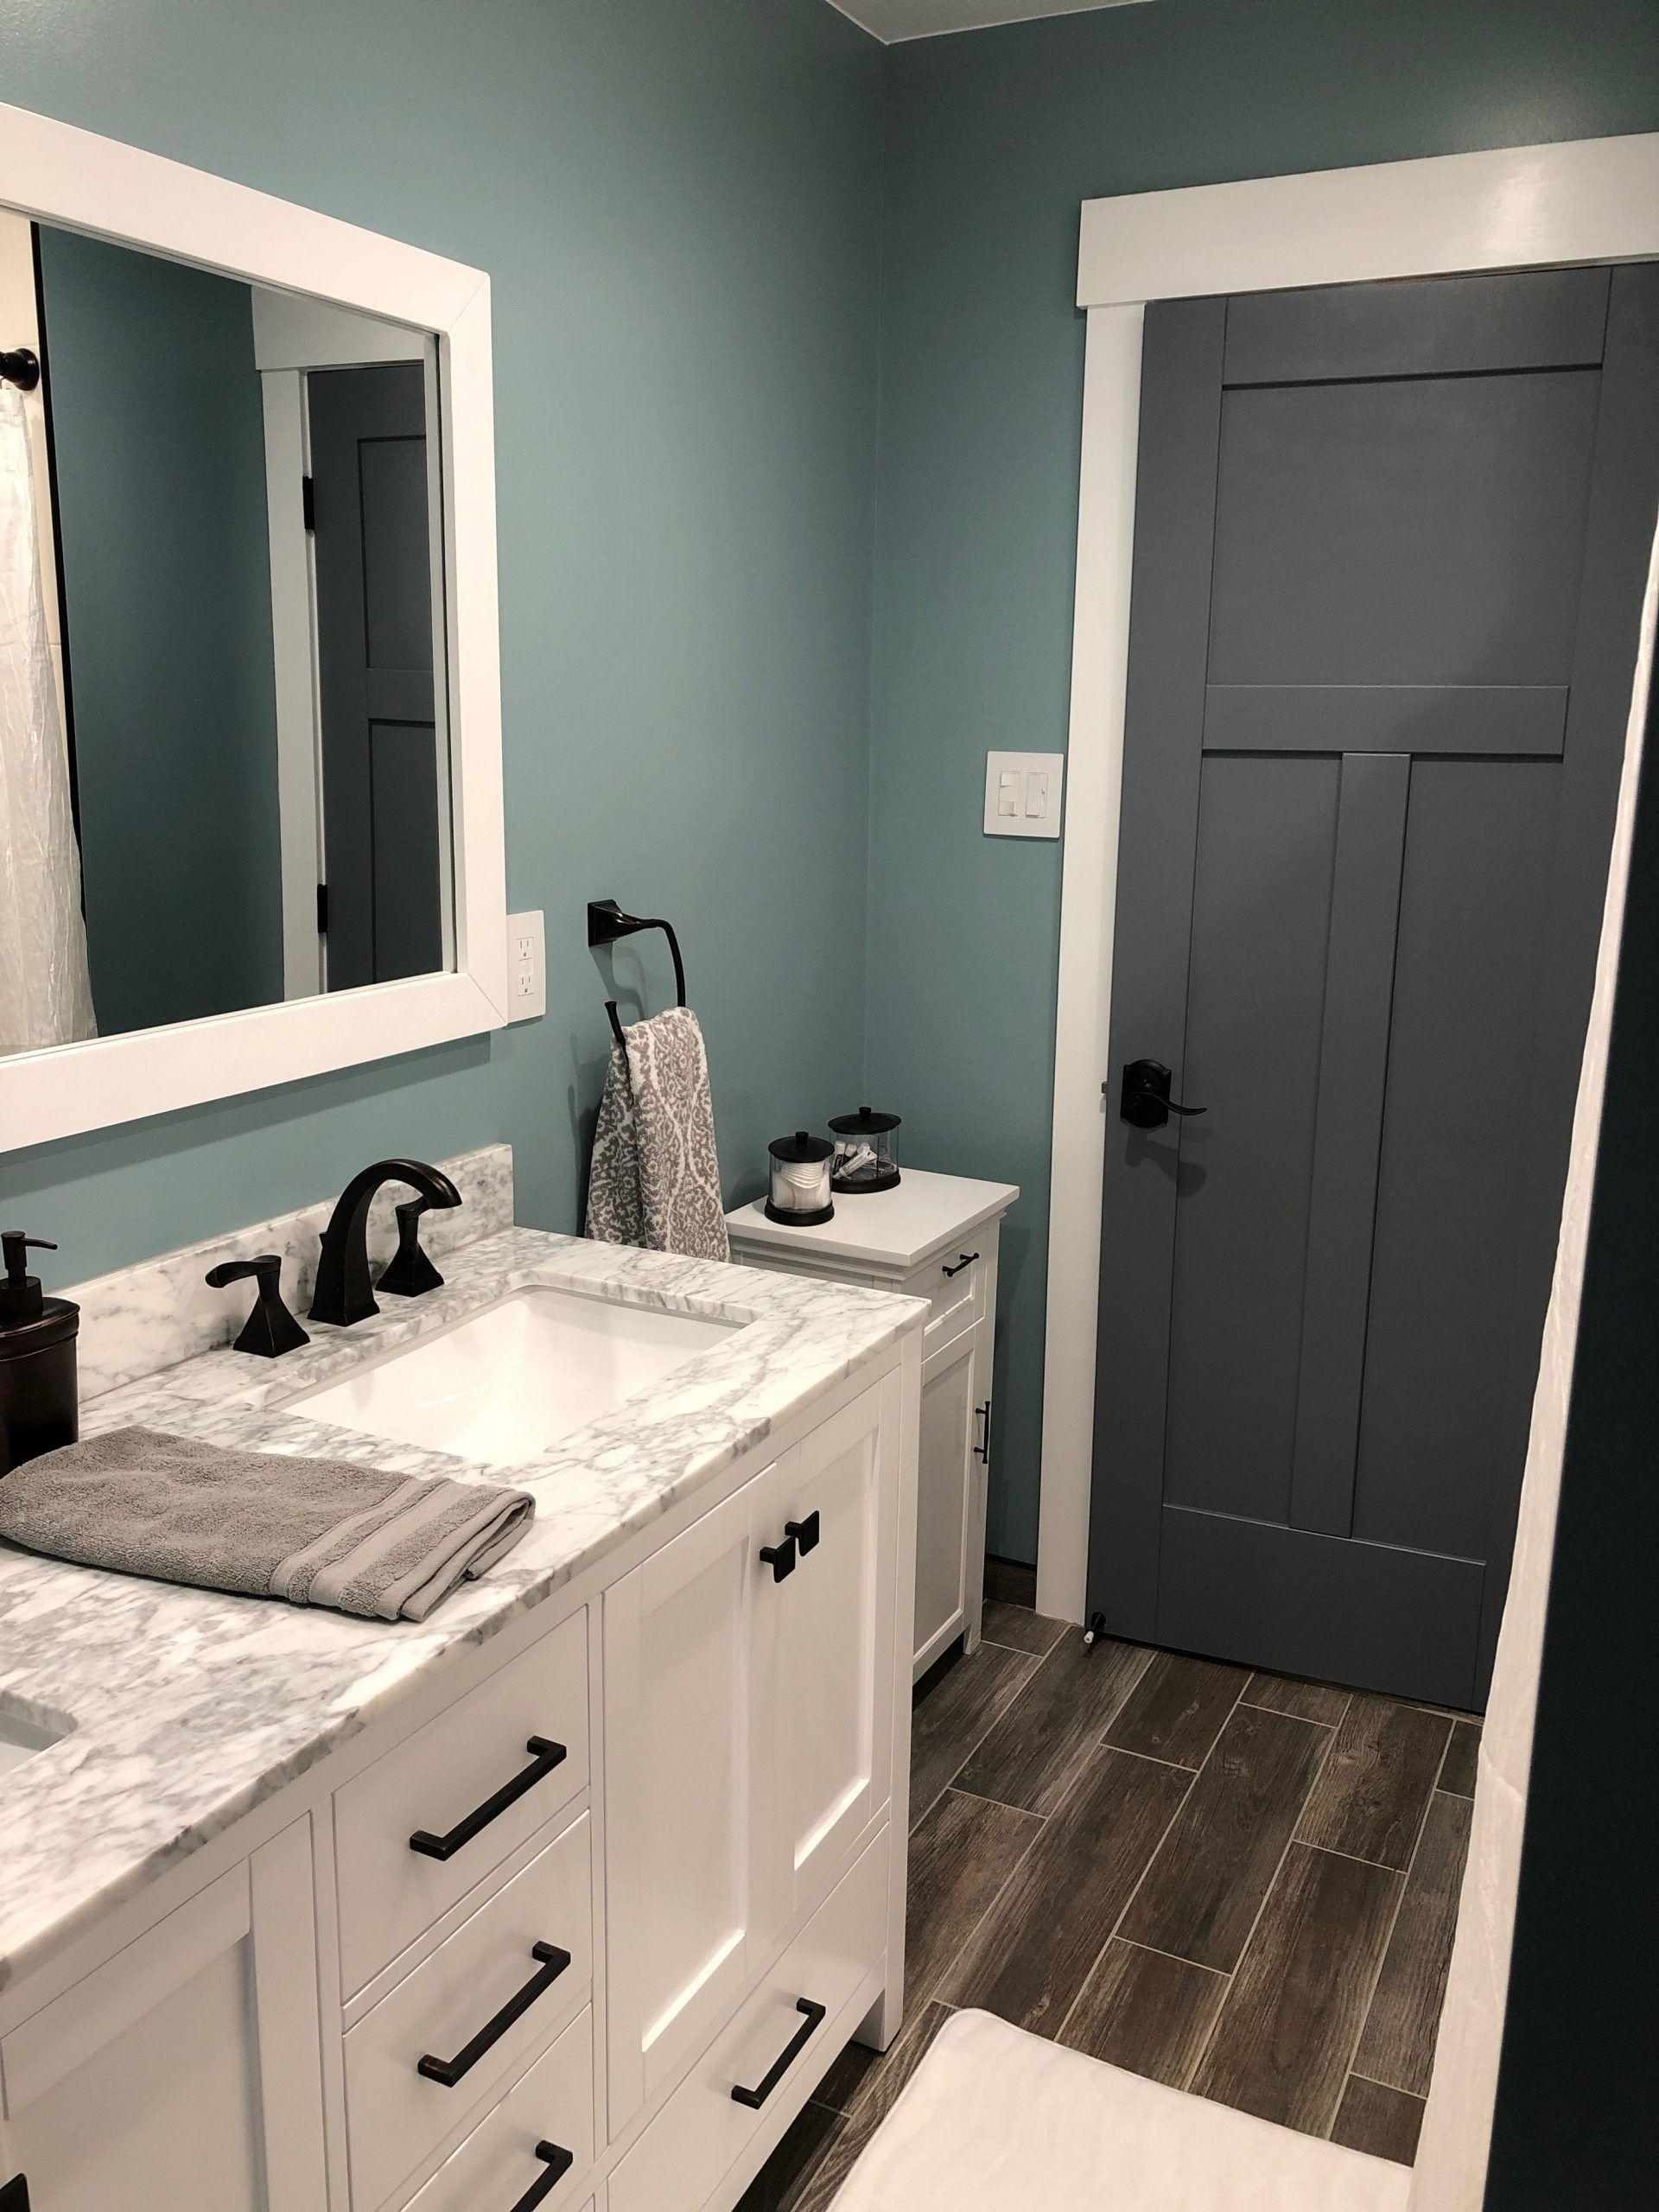 Awesome 10 Sherwin Williams Bathroom Colors Some Of The Cleverest And Inspiring Too For In 2020 Small Bathroom Paint Best Bathroom Paint Colors Bathroom Color Schemes